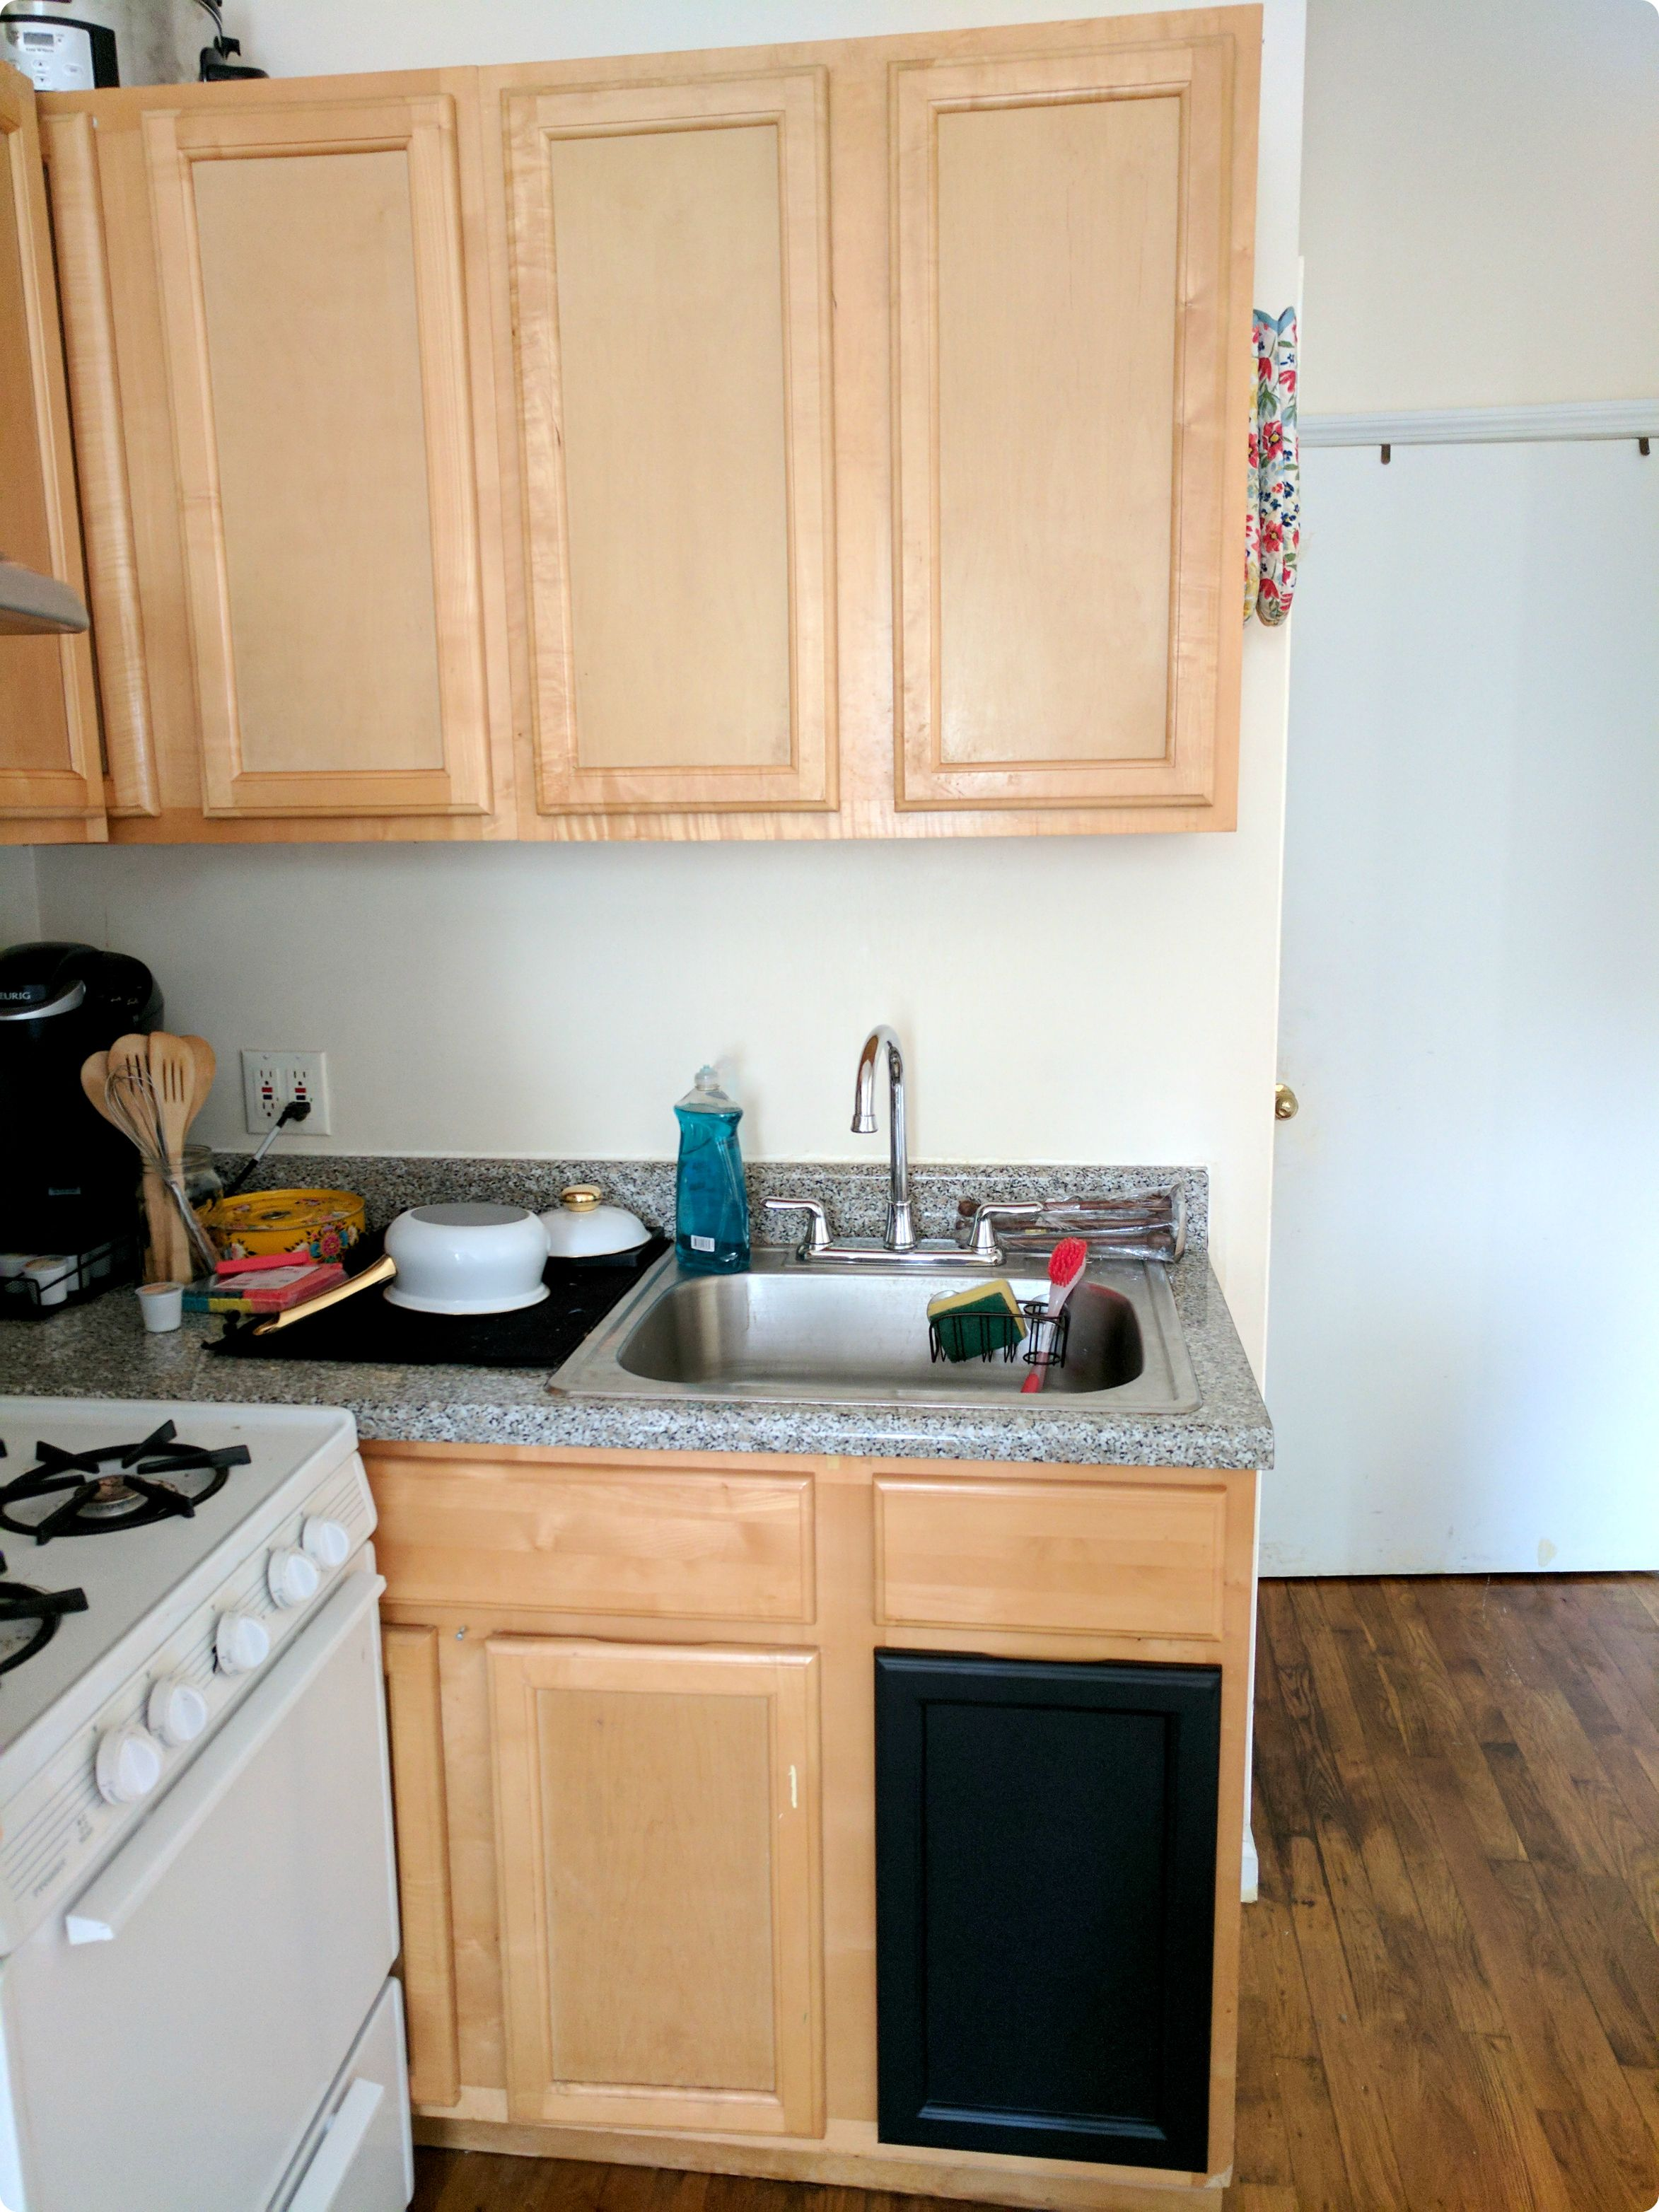 Diy Contact Paper Kitchen Update Part 1 Cabinets Roaming Home In 2020 New Kitchen Cabinet Doors Kitchen Cabinets Contact Paper Kitchen Cabinets